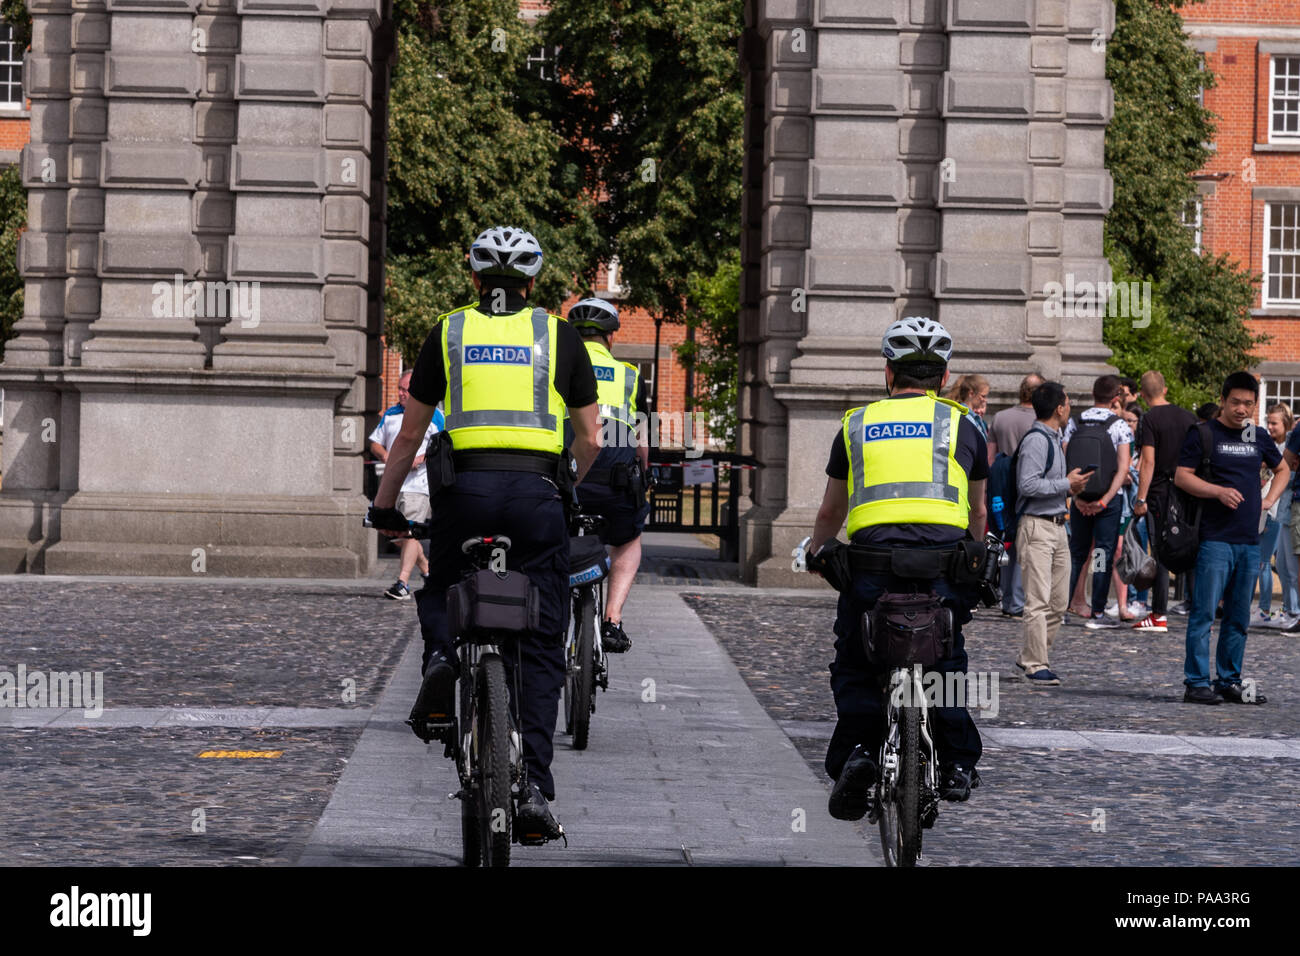 Guards from Trinity College enter a common area on bicycles. - Stock Image